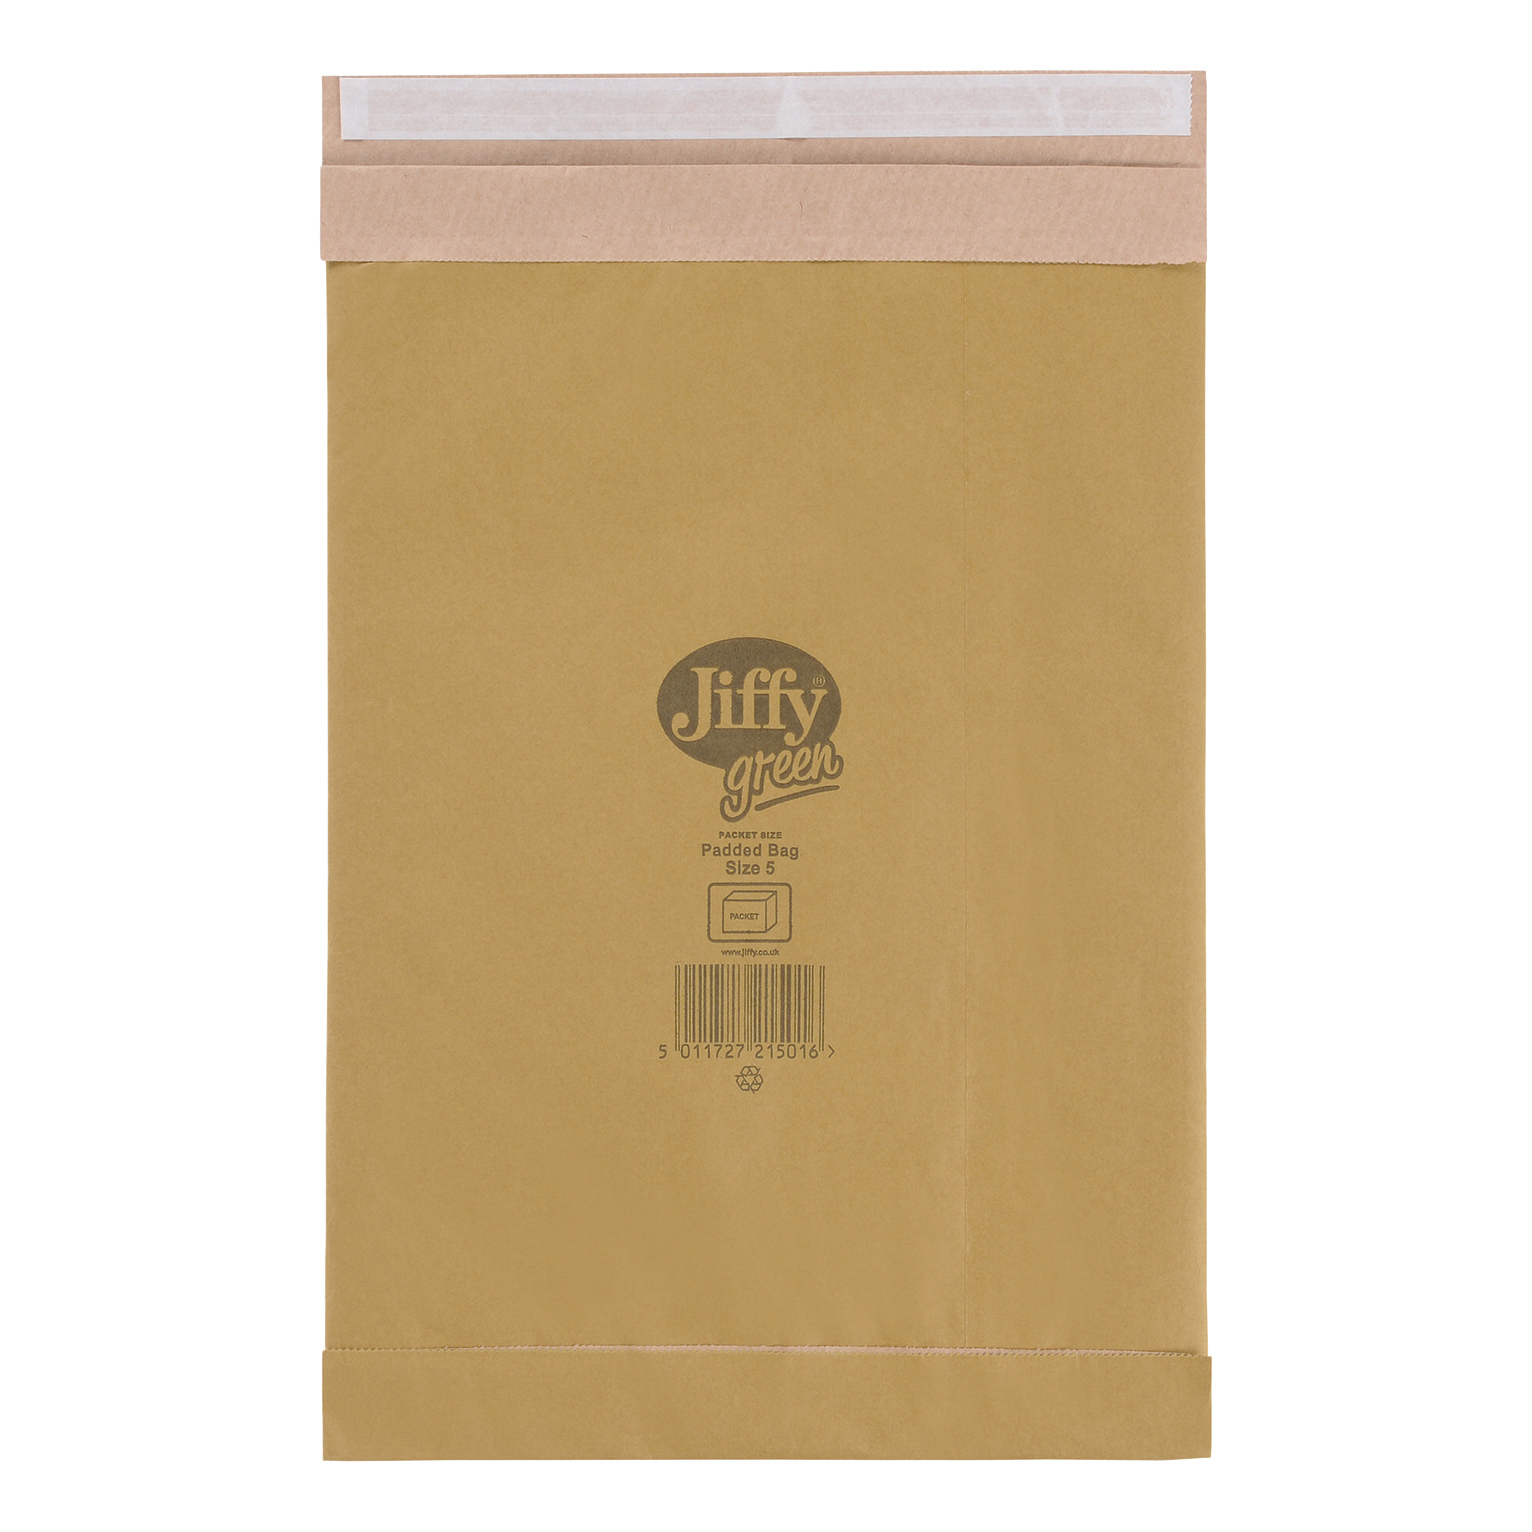 Jiffy Green Padded Bags with Kraft Outer and Recycled Cushioning Size 5 245x381mm Ref 01901 [Pack 25]